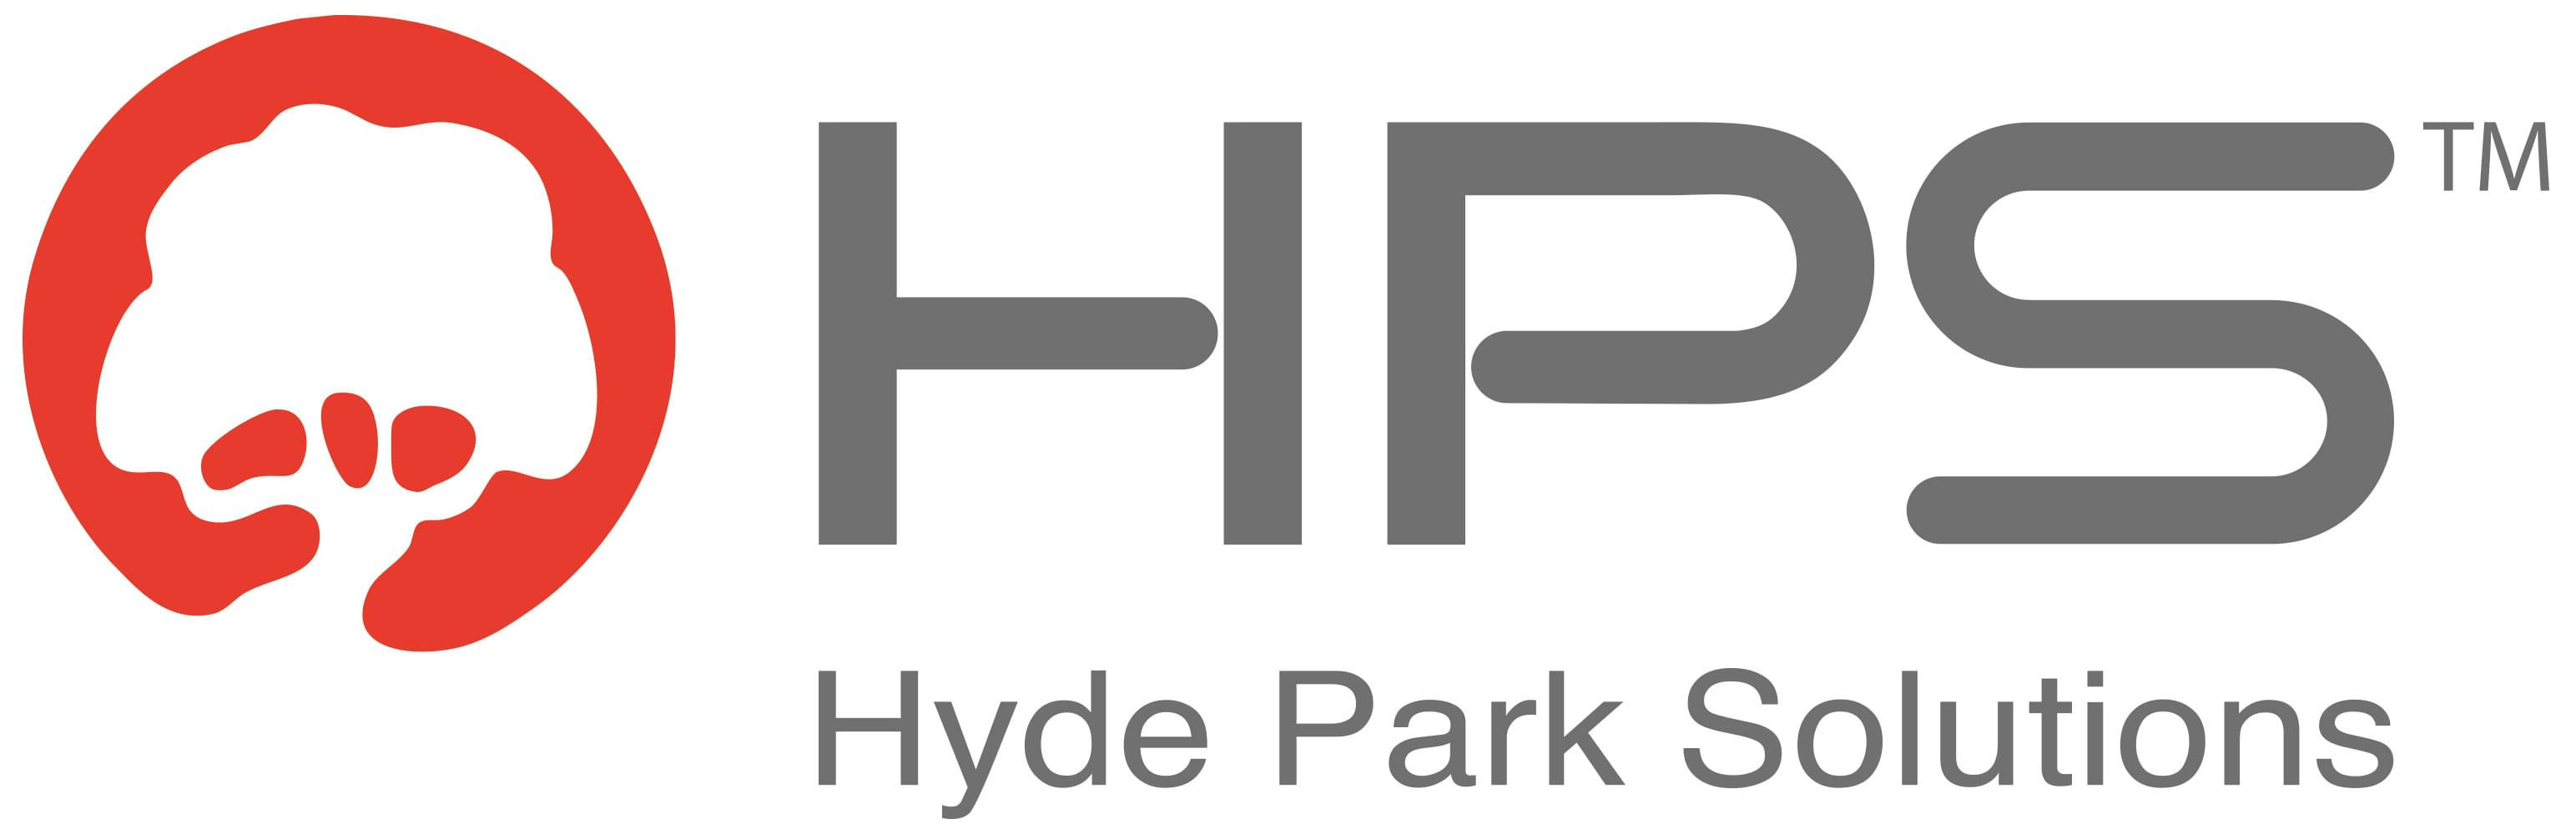 Hyde Park Solutions